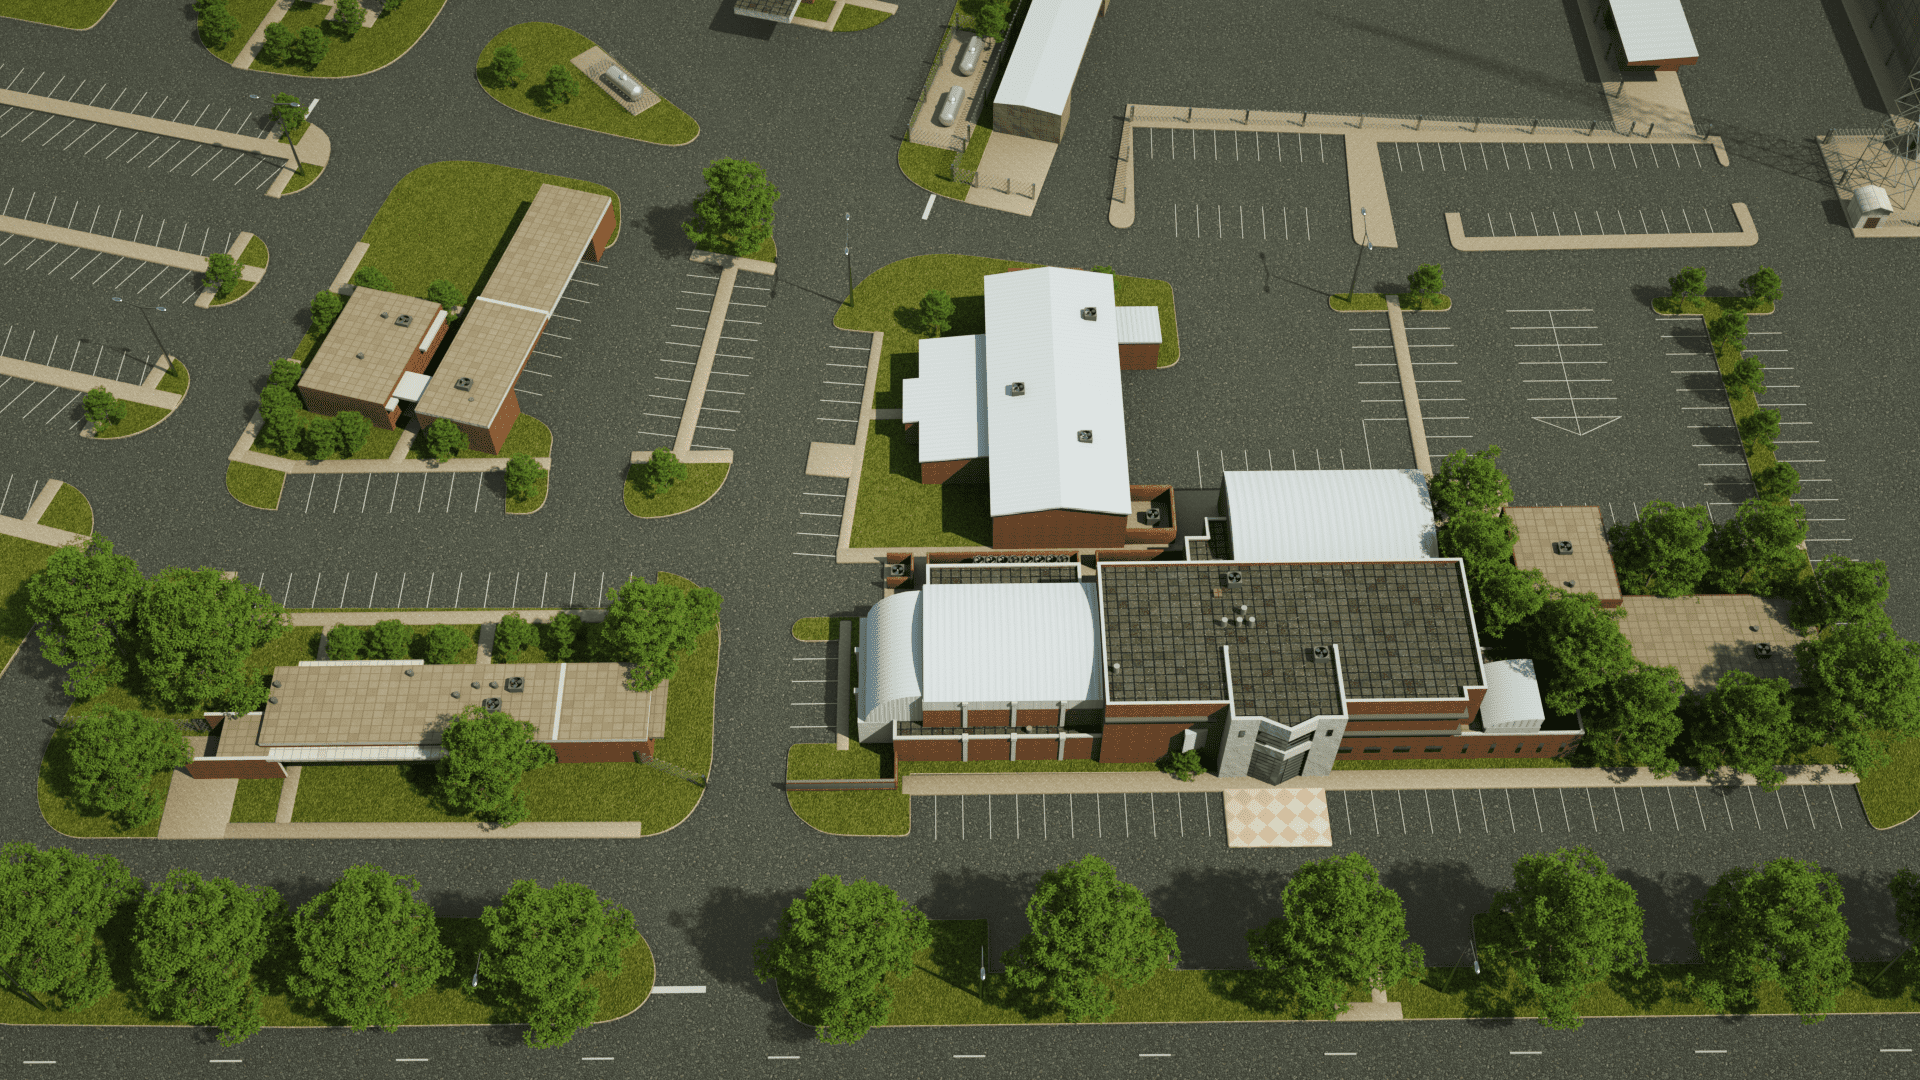 Additional Building Added To Site Map